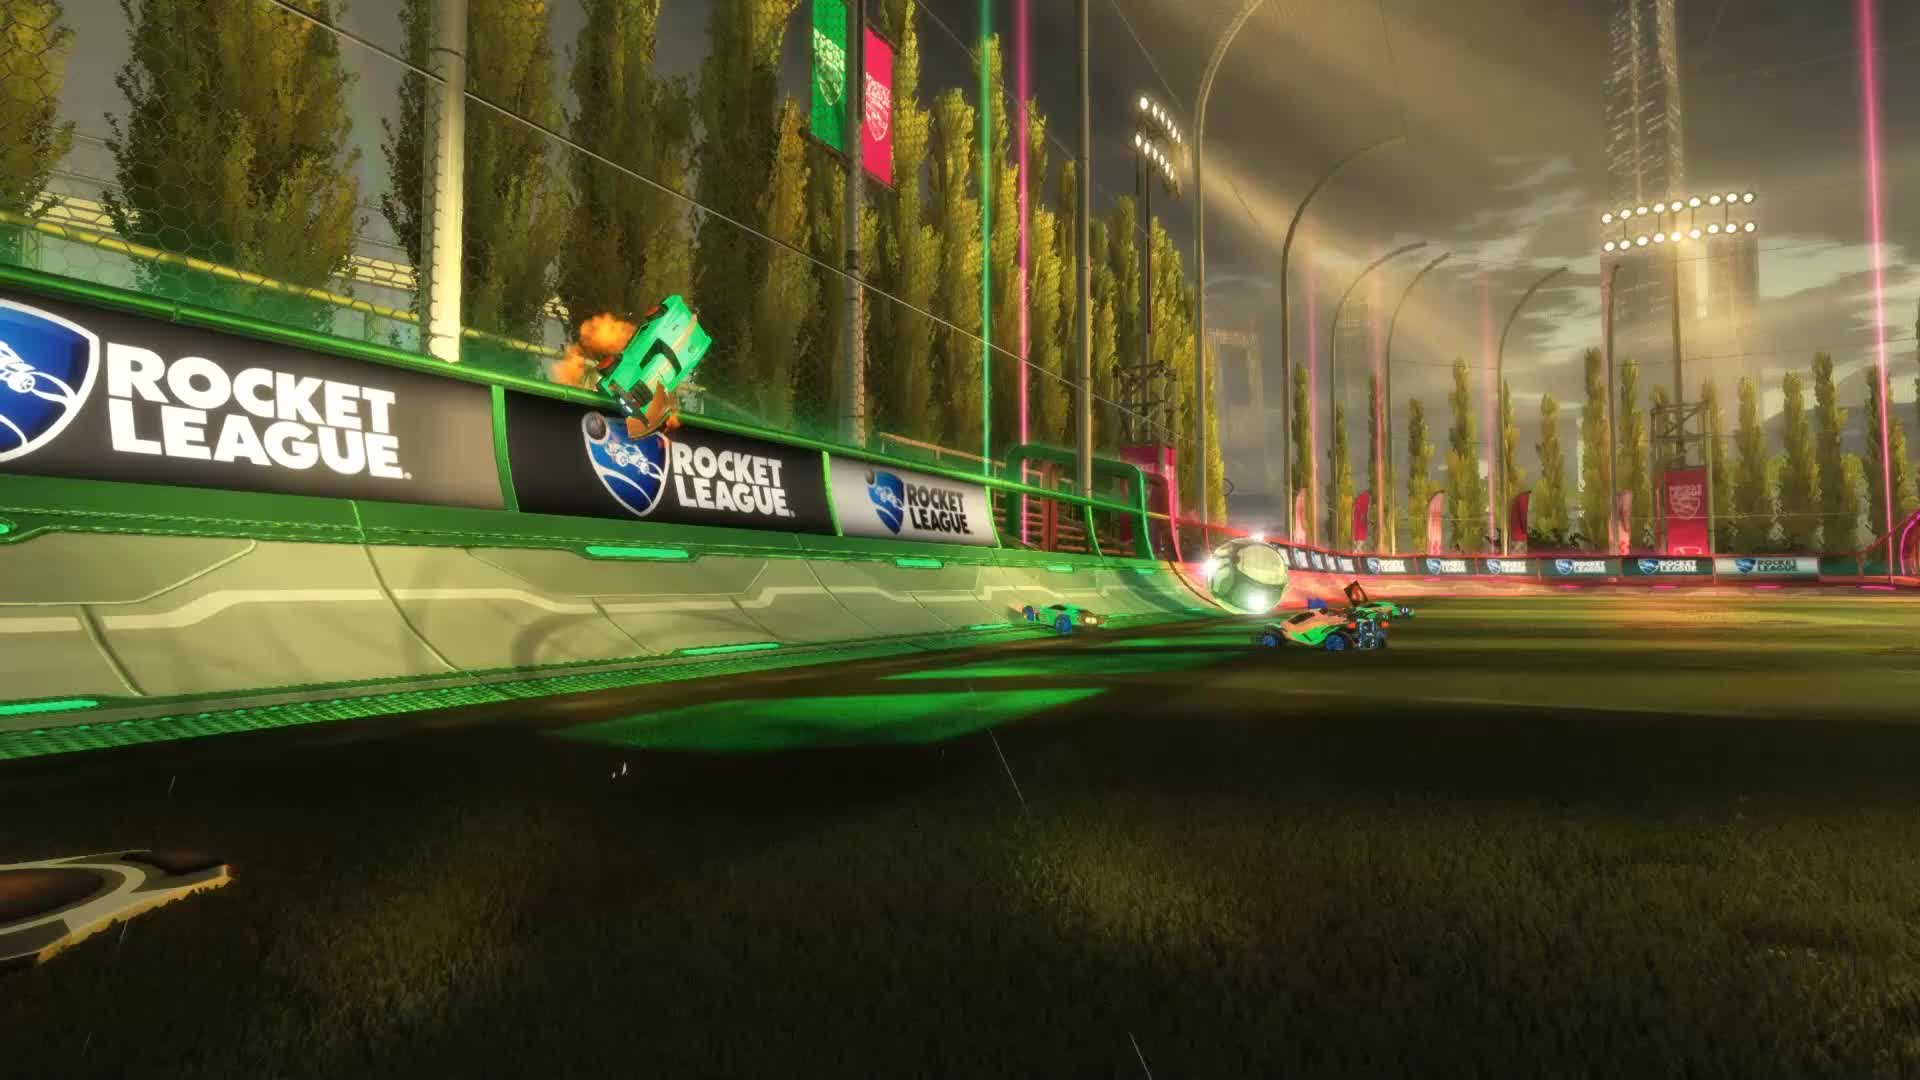 Rocket League, zelda GIFs